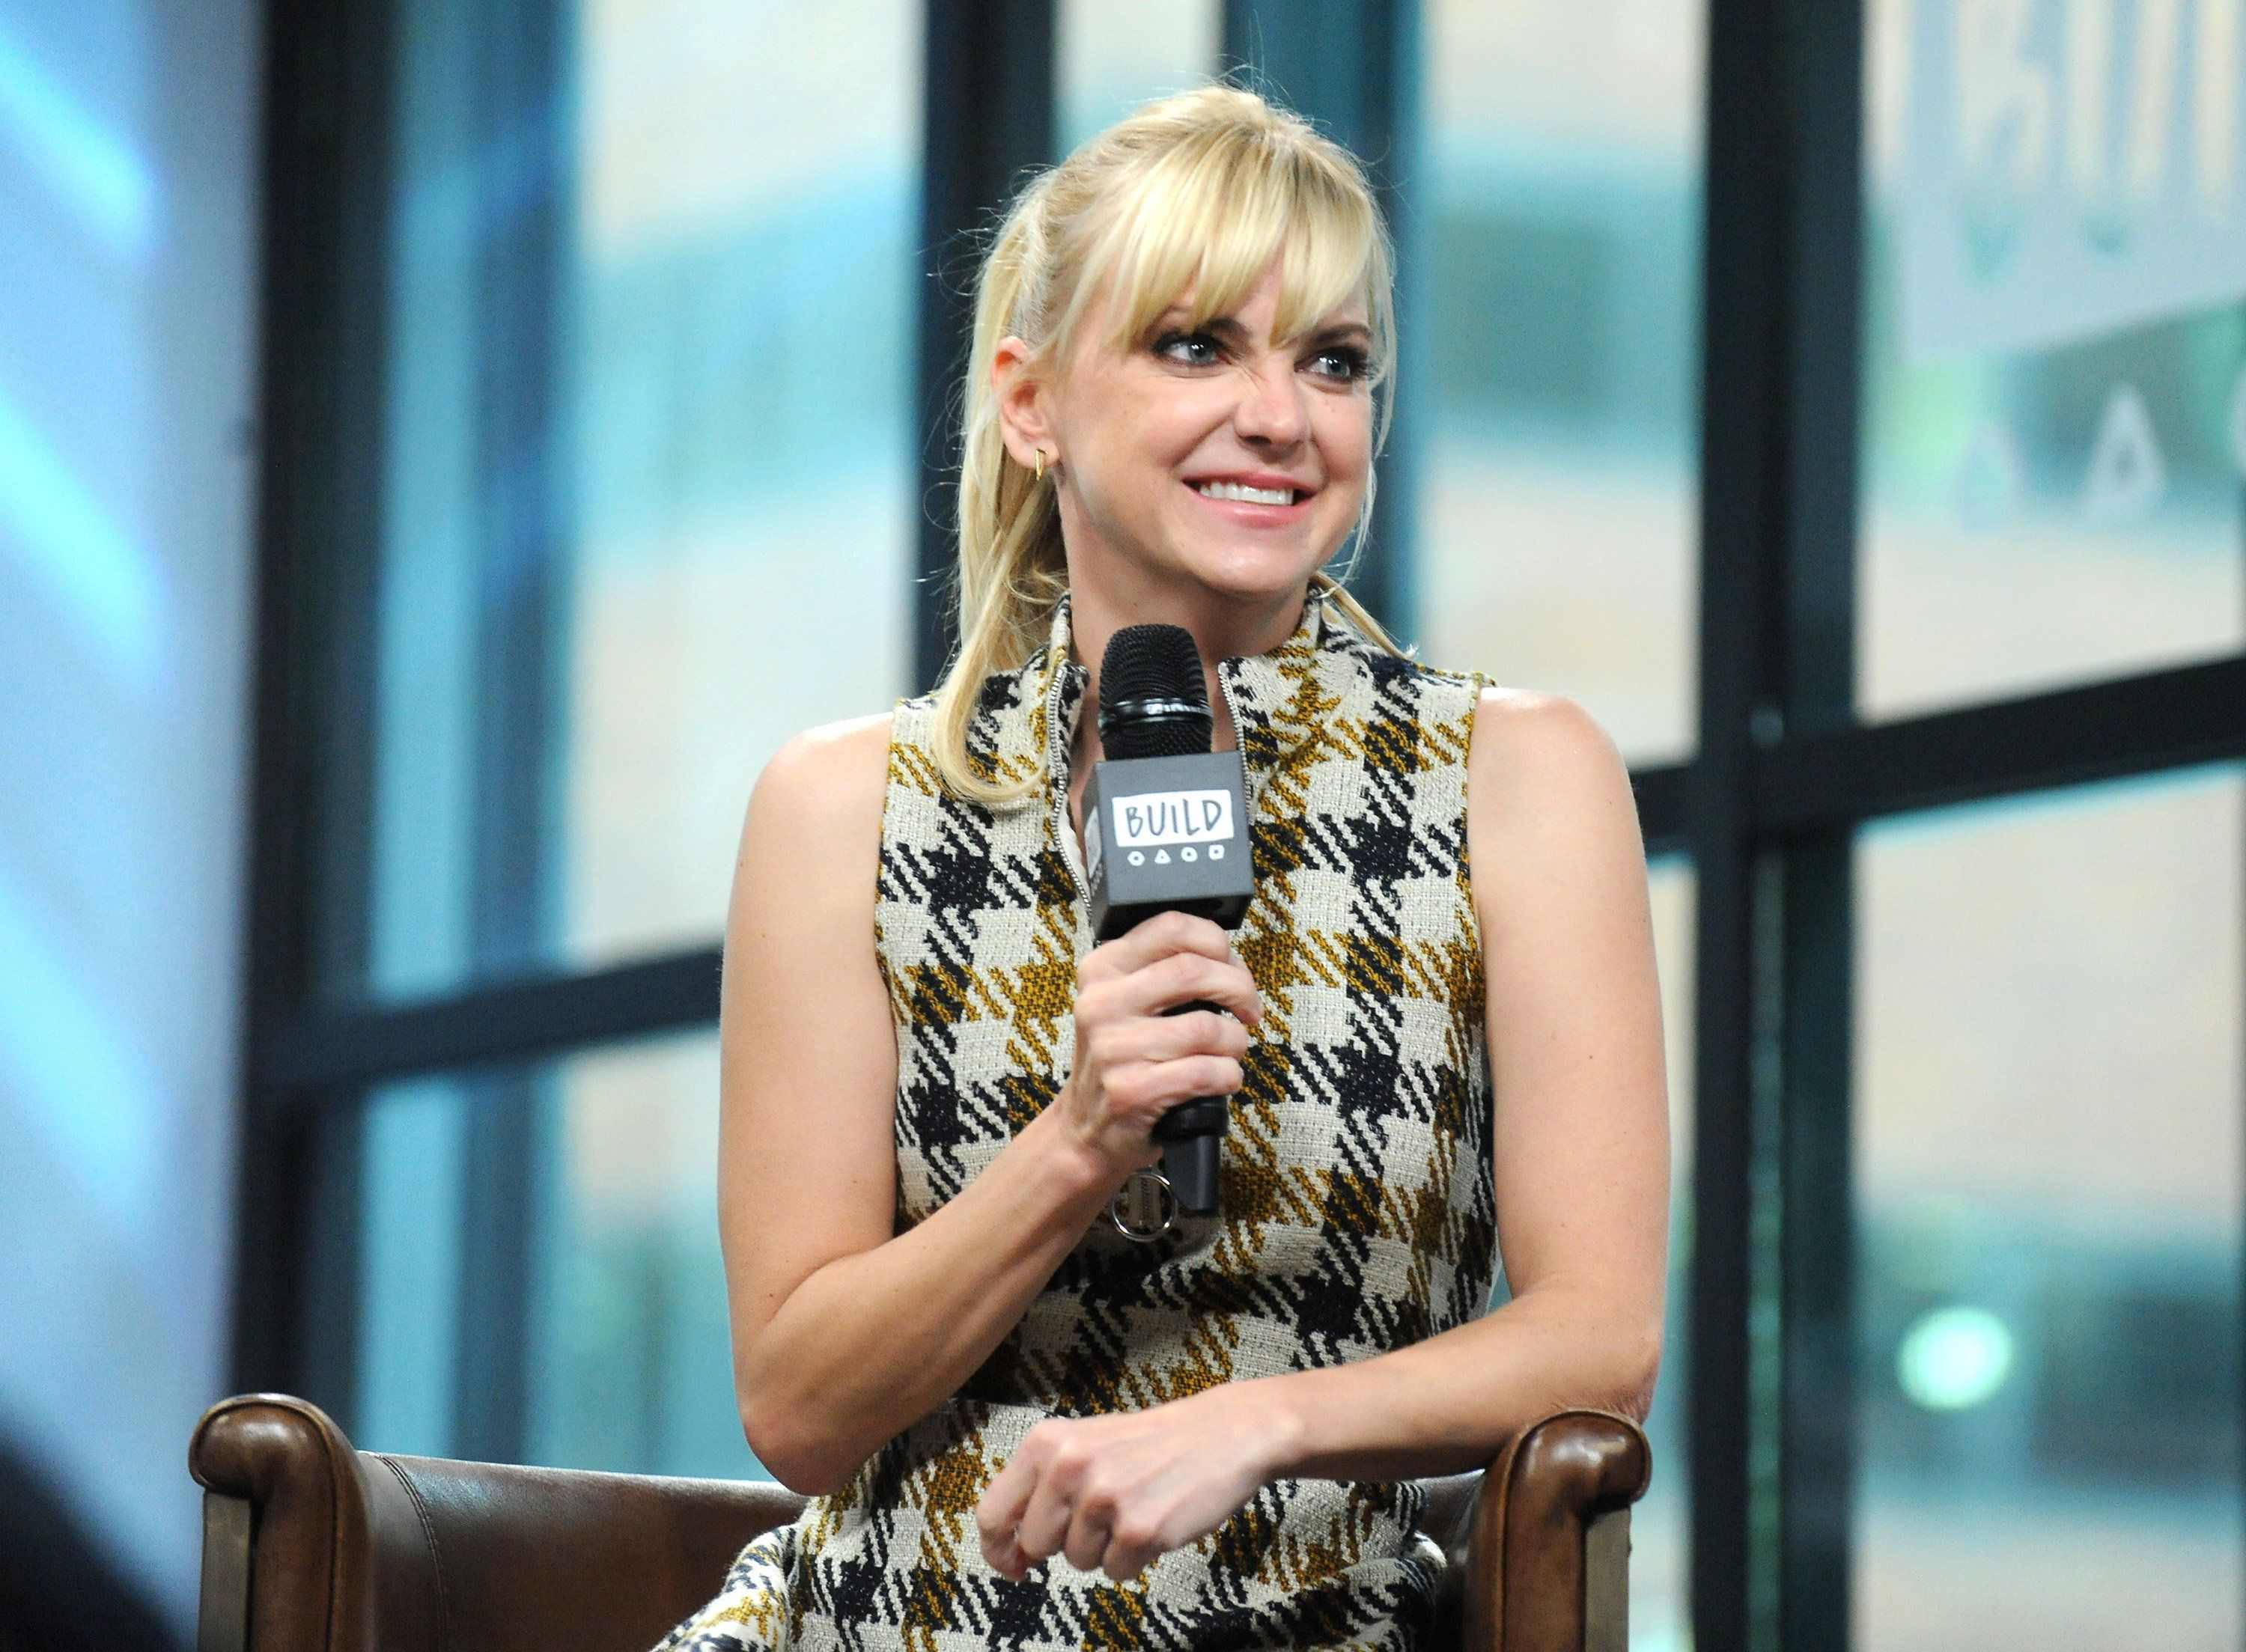 NEW YORK, NY - OCTOBER 23:  Actress Anna Faris visits Build to discuss her podcast 'Unqualified' at Build Studio on October 23, 2017 in New York City.  (Photo by Desiree Navarro/WireImage)